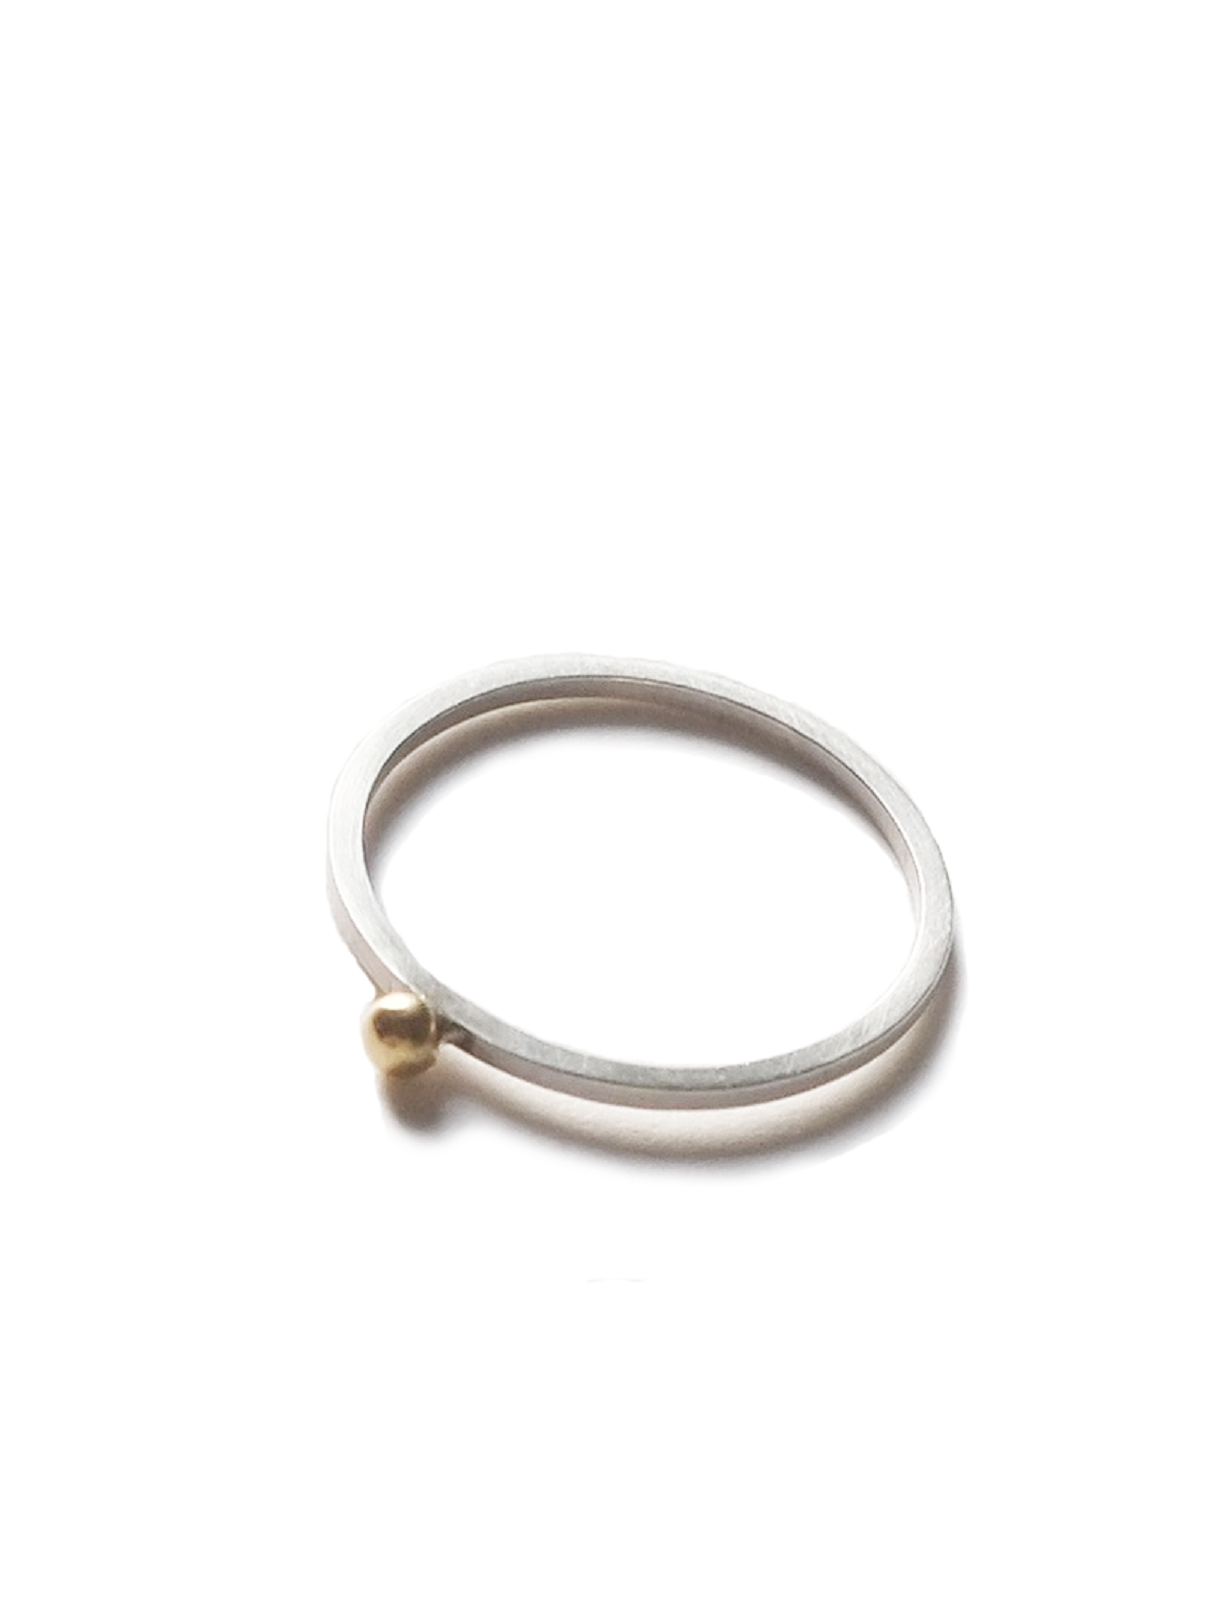 Megan Collins Jewellery - Gold Dot ring PNG.png